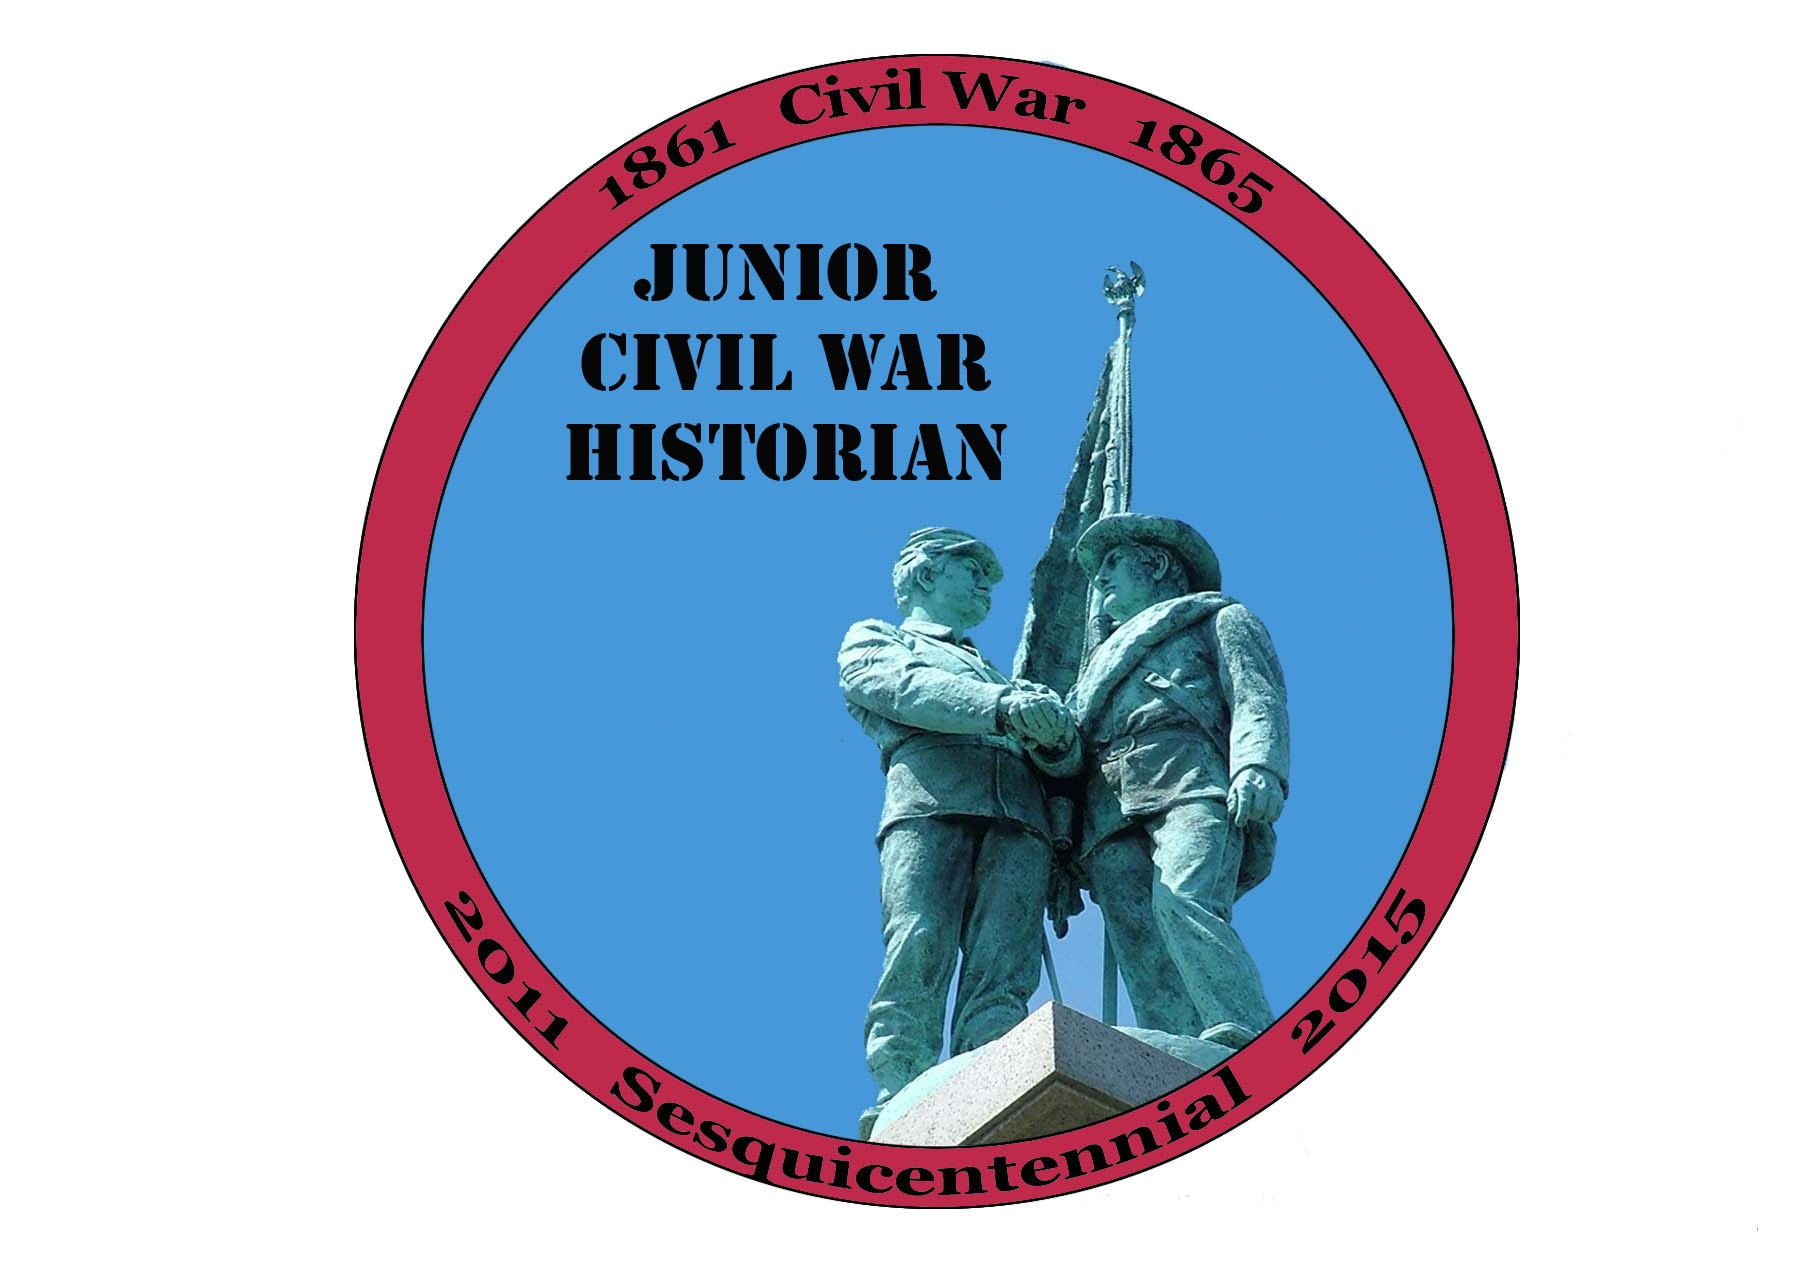 Junior Civil War Historian patch, an exciting way to mark the 150th anniversary of the Civil War.